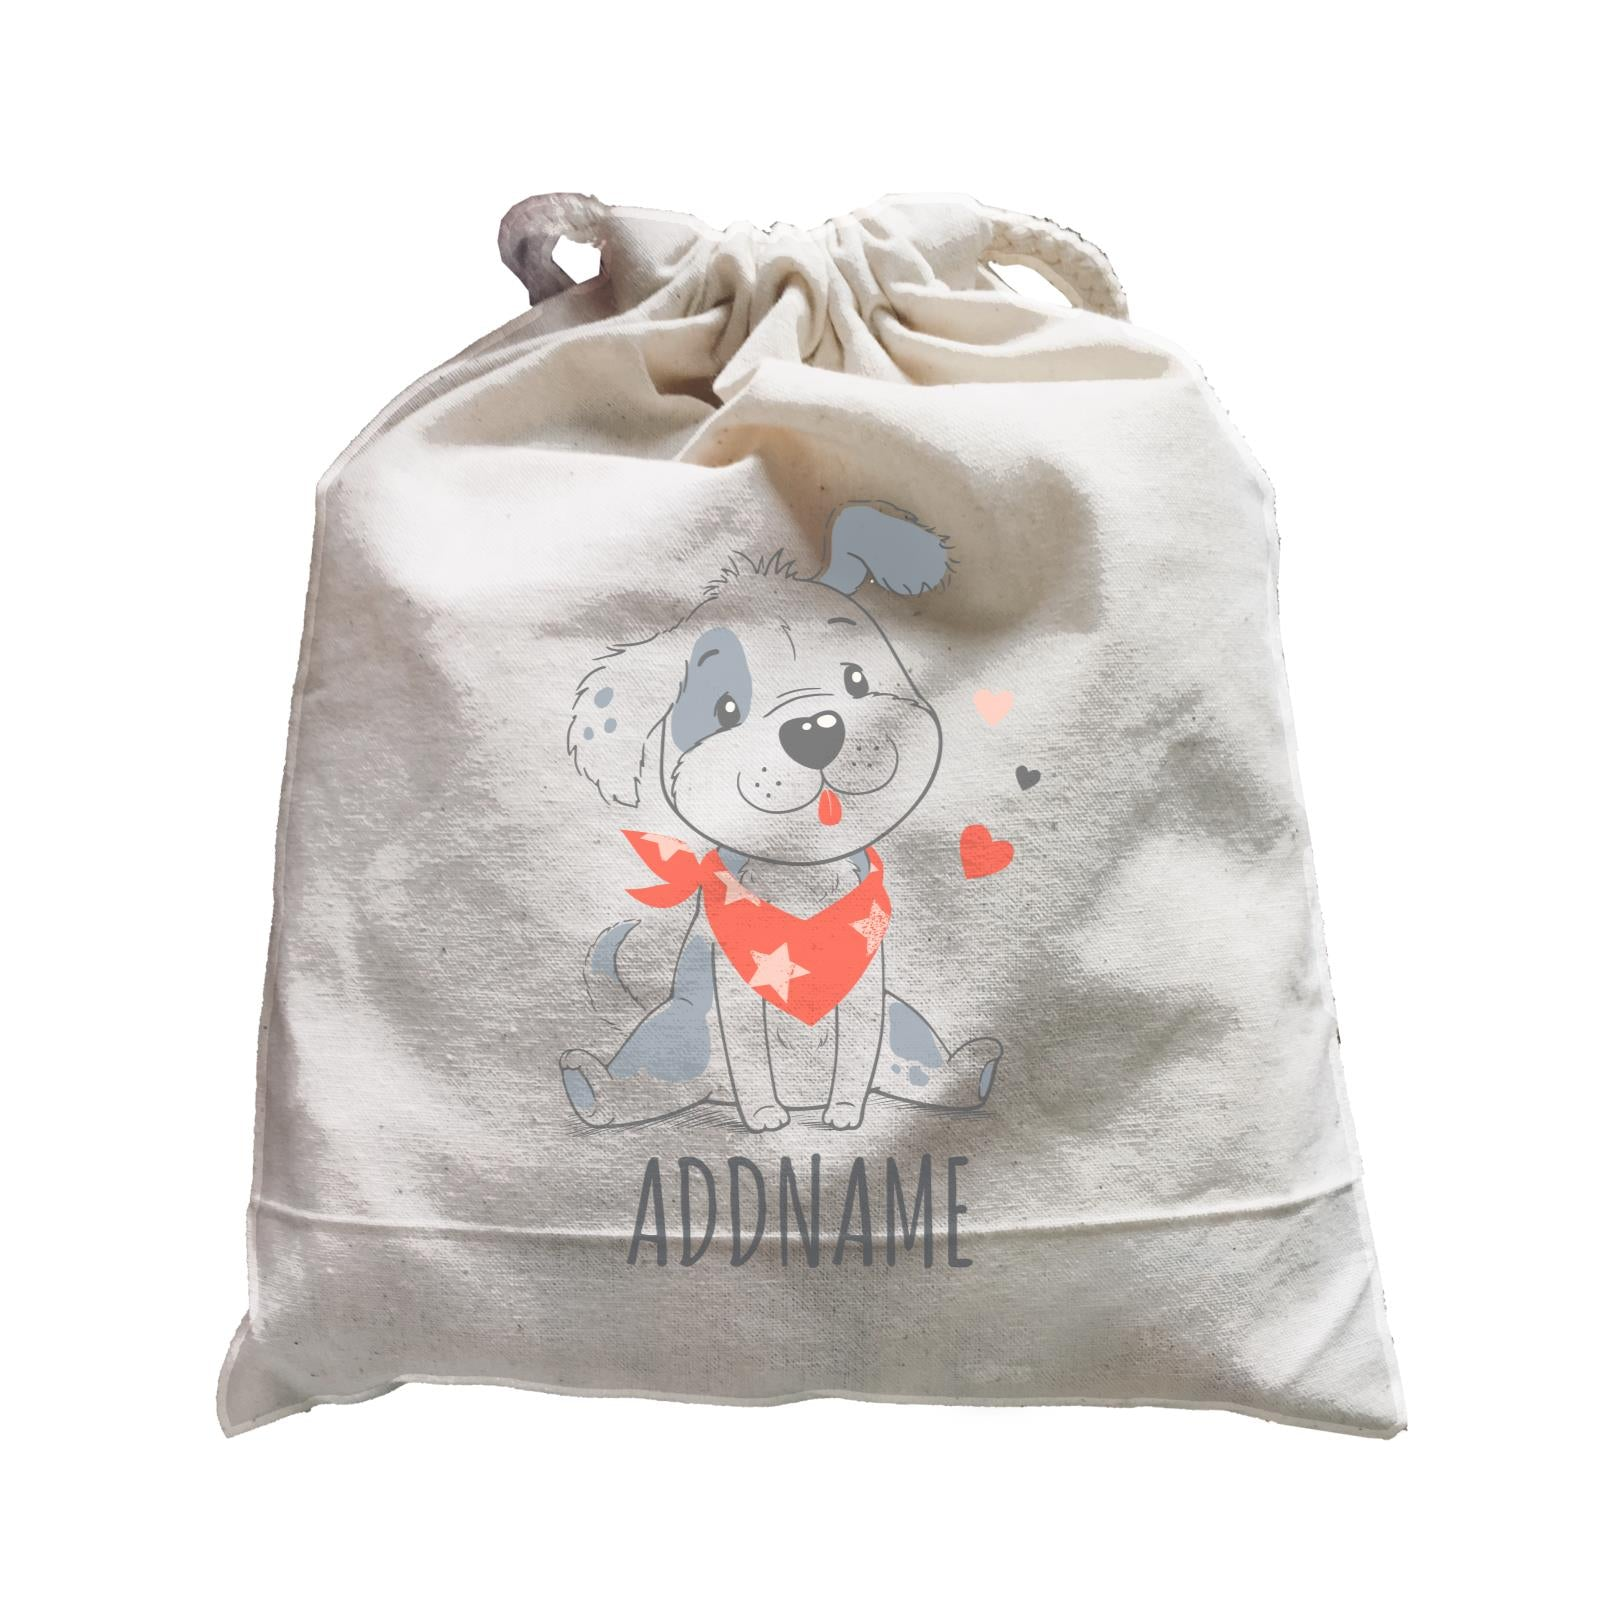 Dog with Scarf Satchel Personalizable Designs Cute Sweet Animal HG